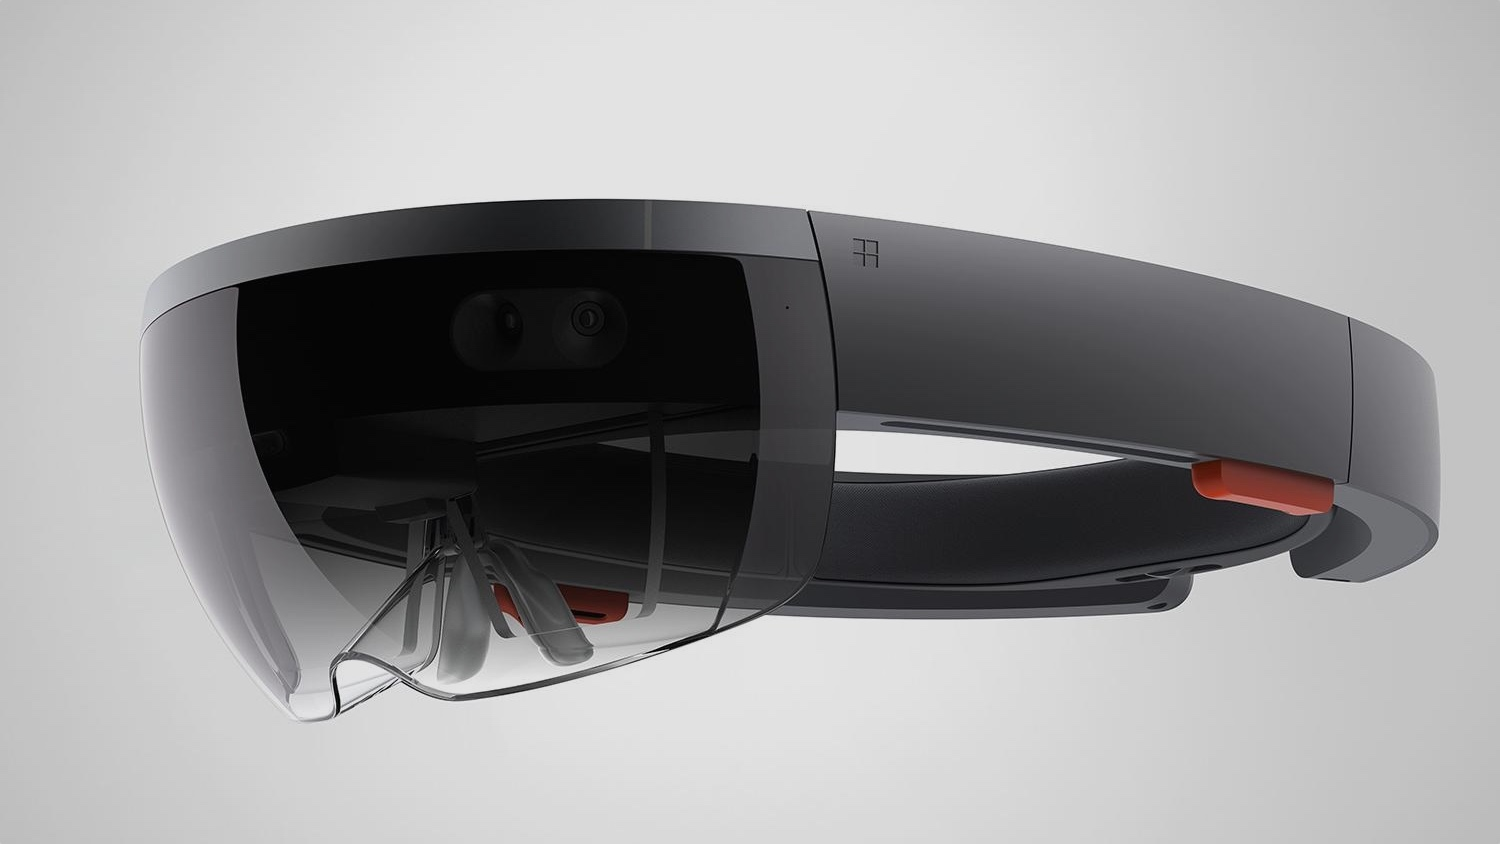 HoloLens is getting Xbox Live